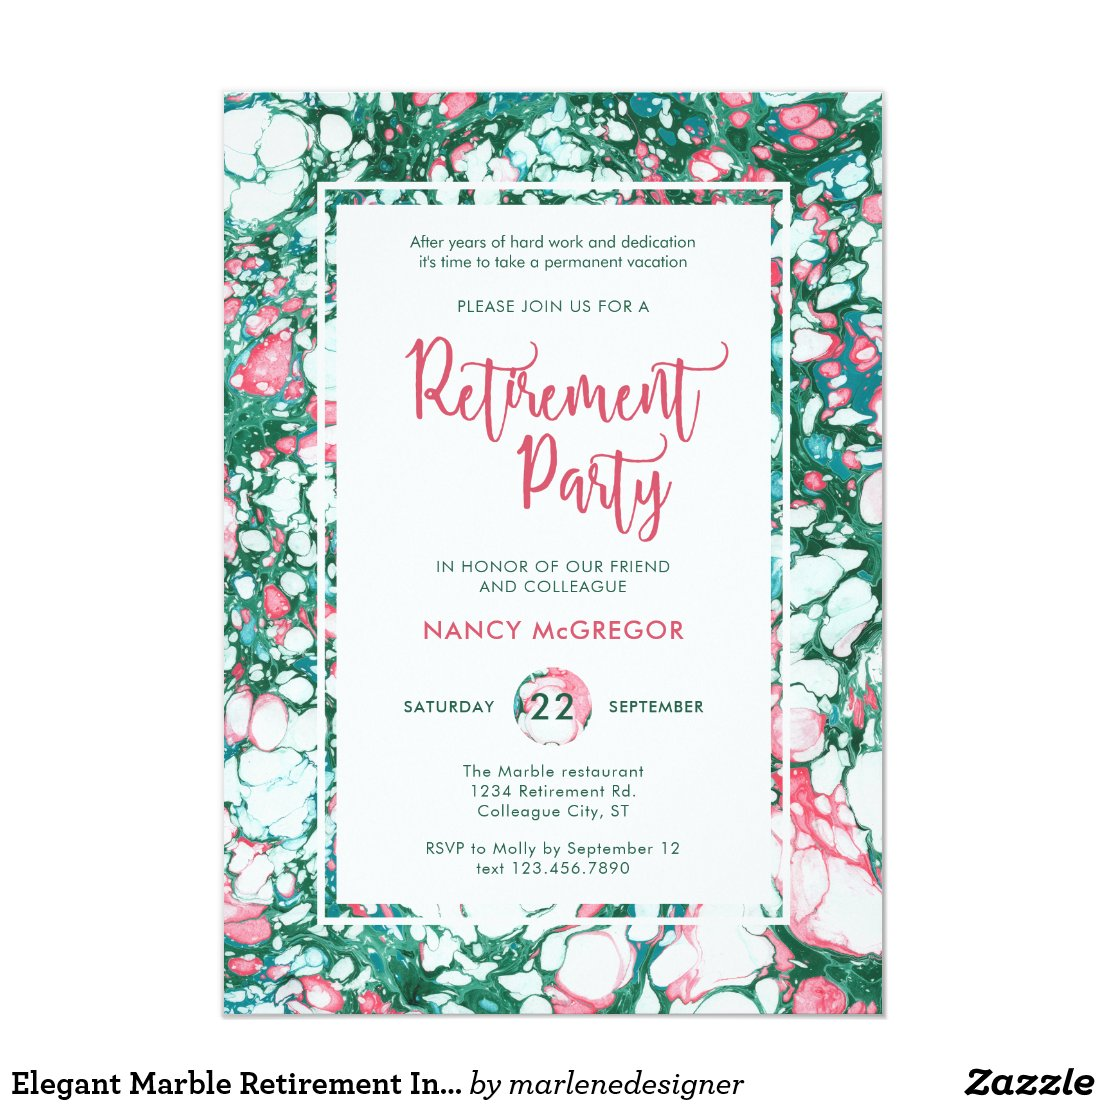 Elegant Marble Retirement Invitation